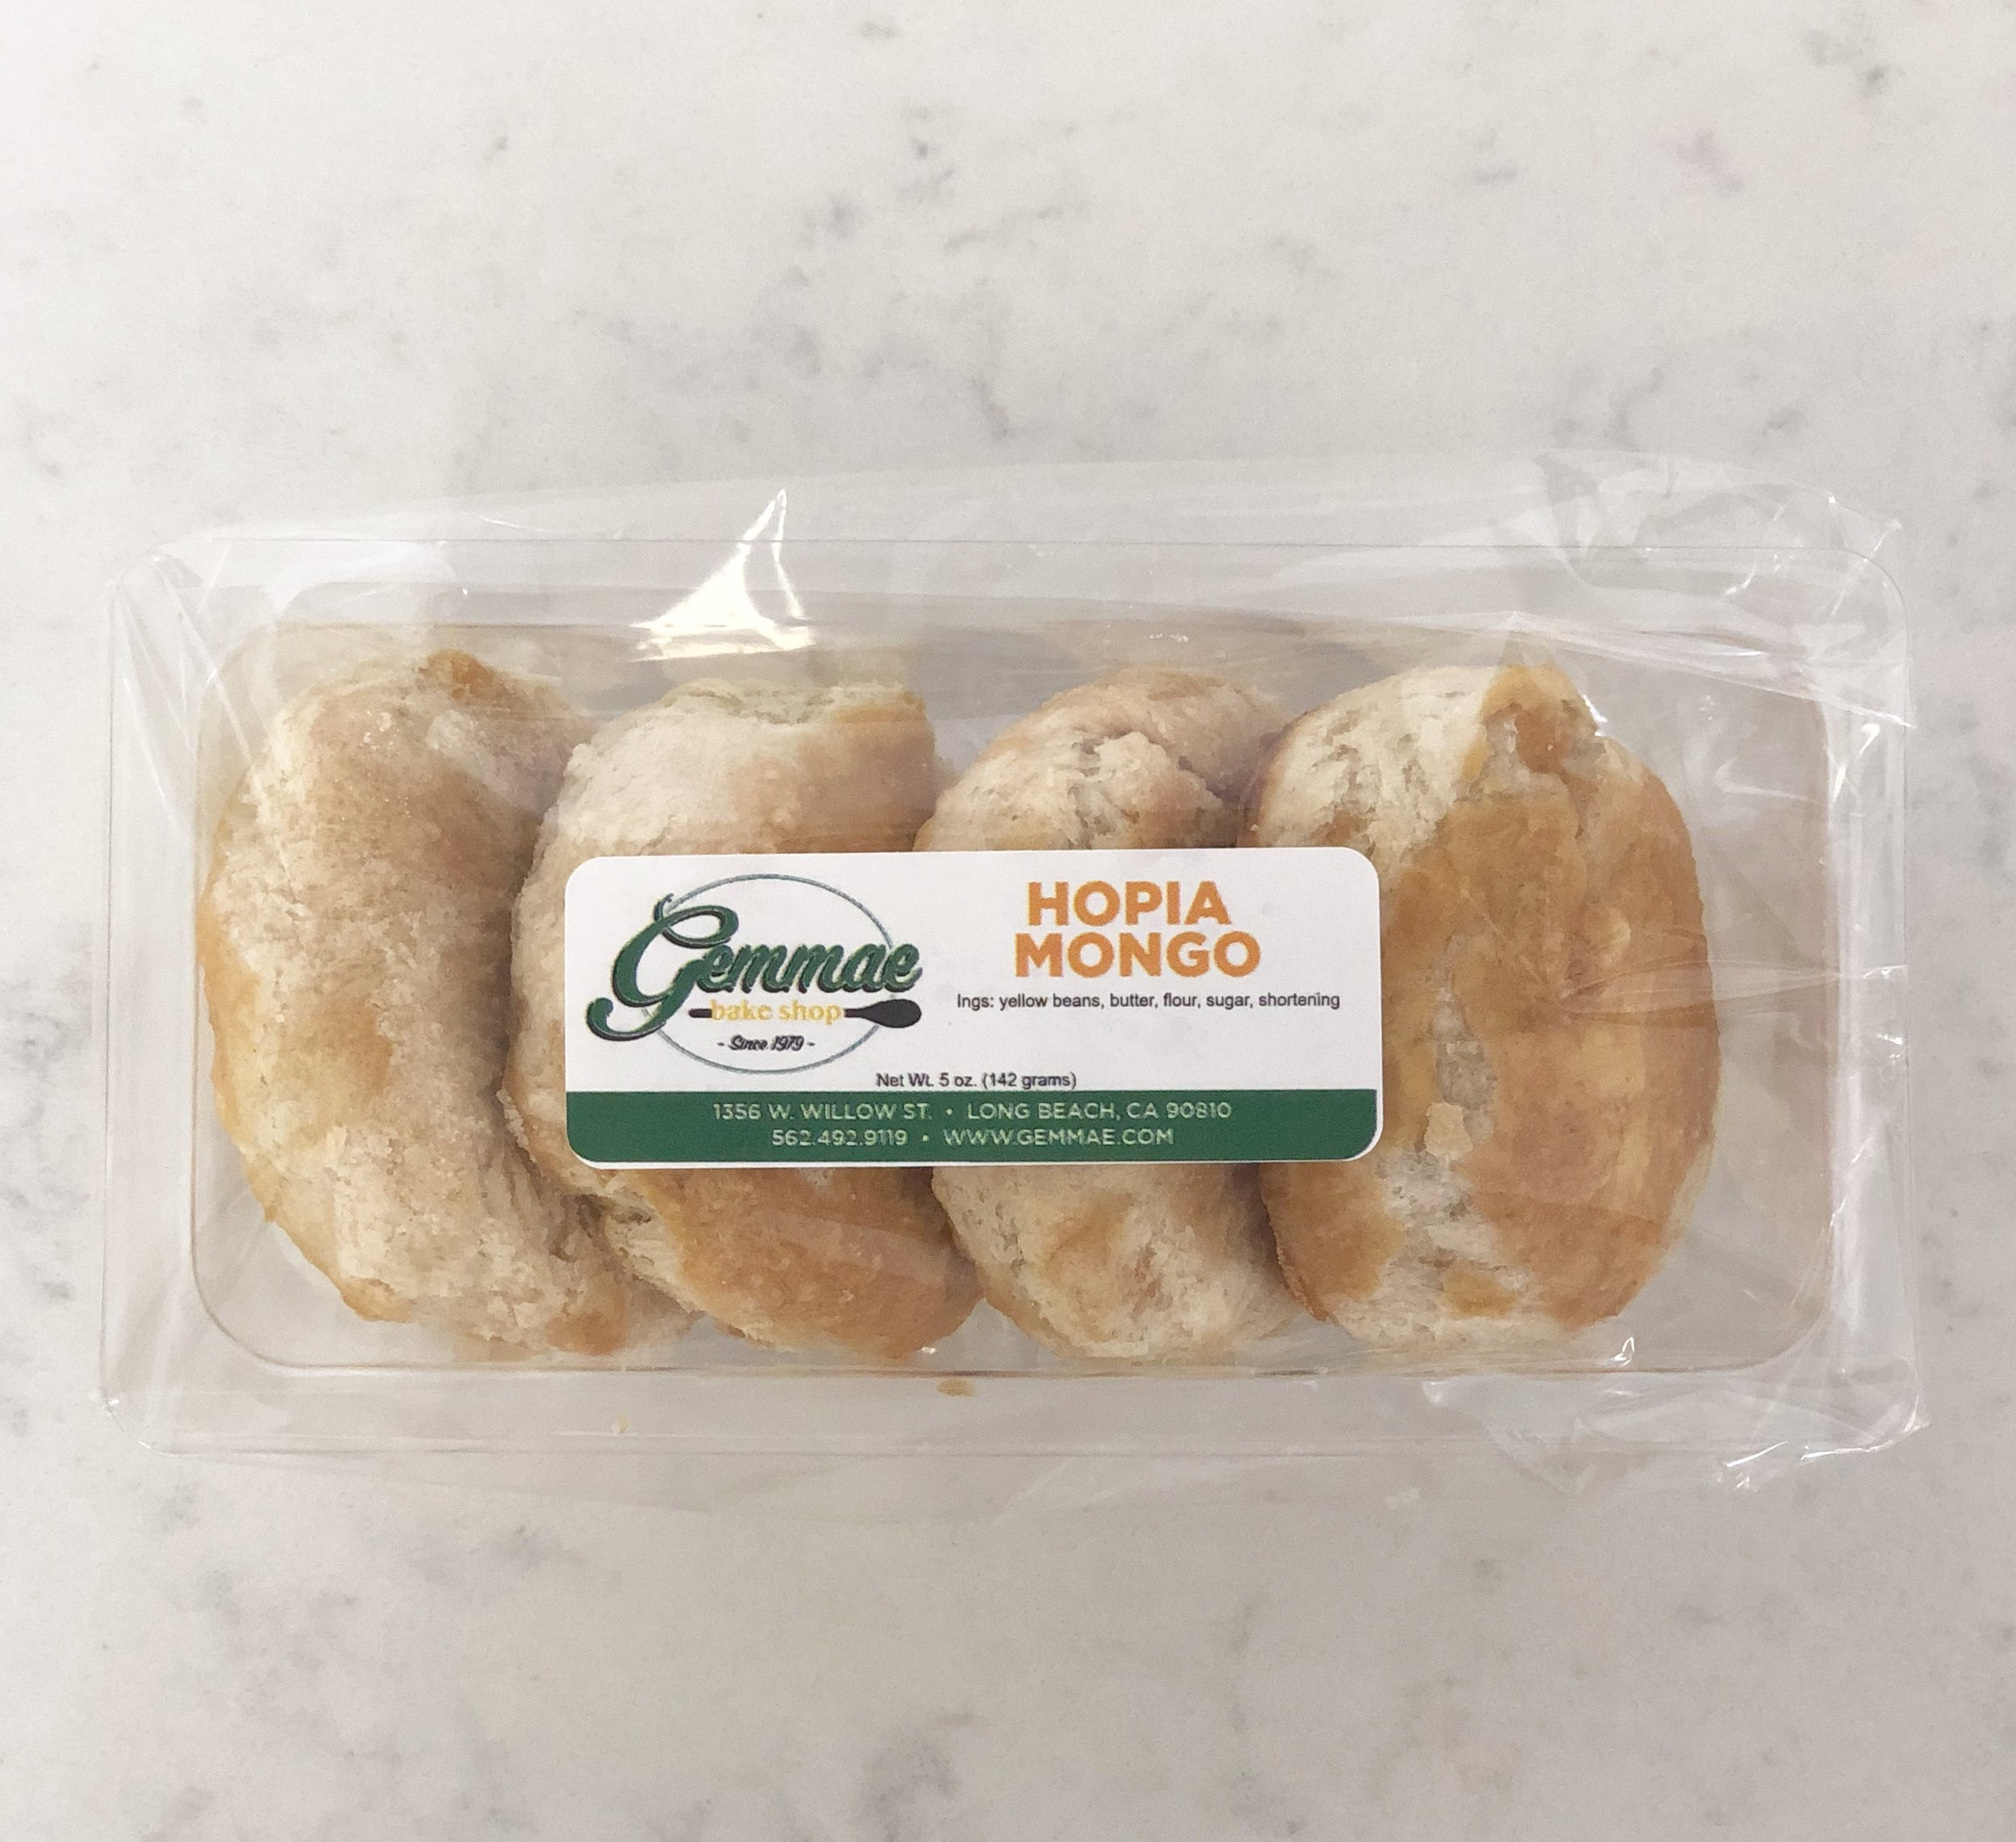 HOPIA MONGO   Flaky puff pastry filled with rich Mongo (sweetened yellow bean). Each pack contains 4 hopia buns.